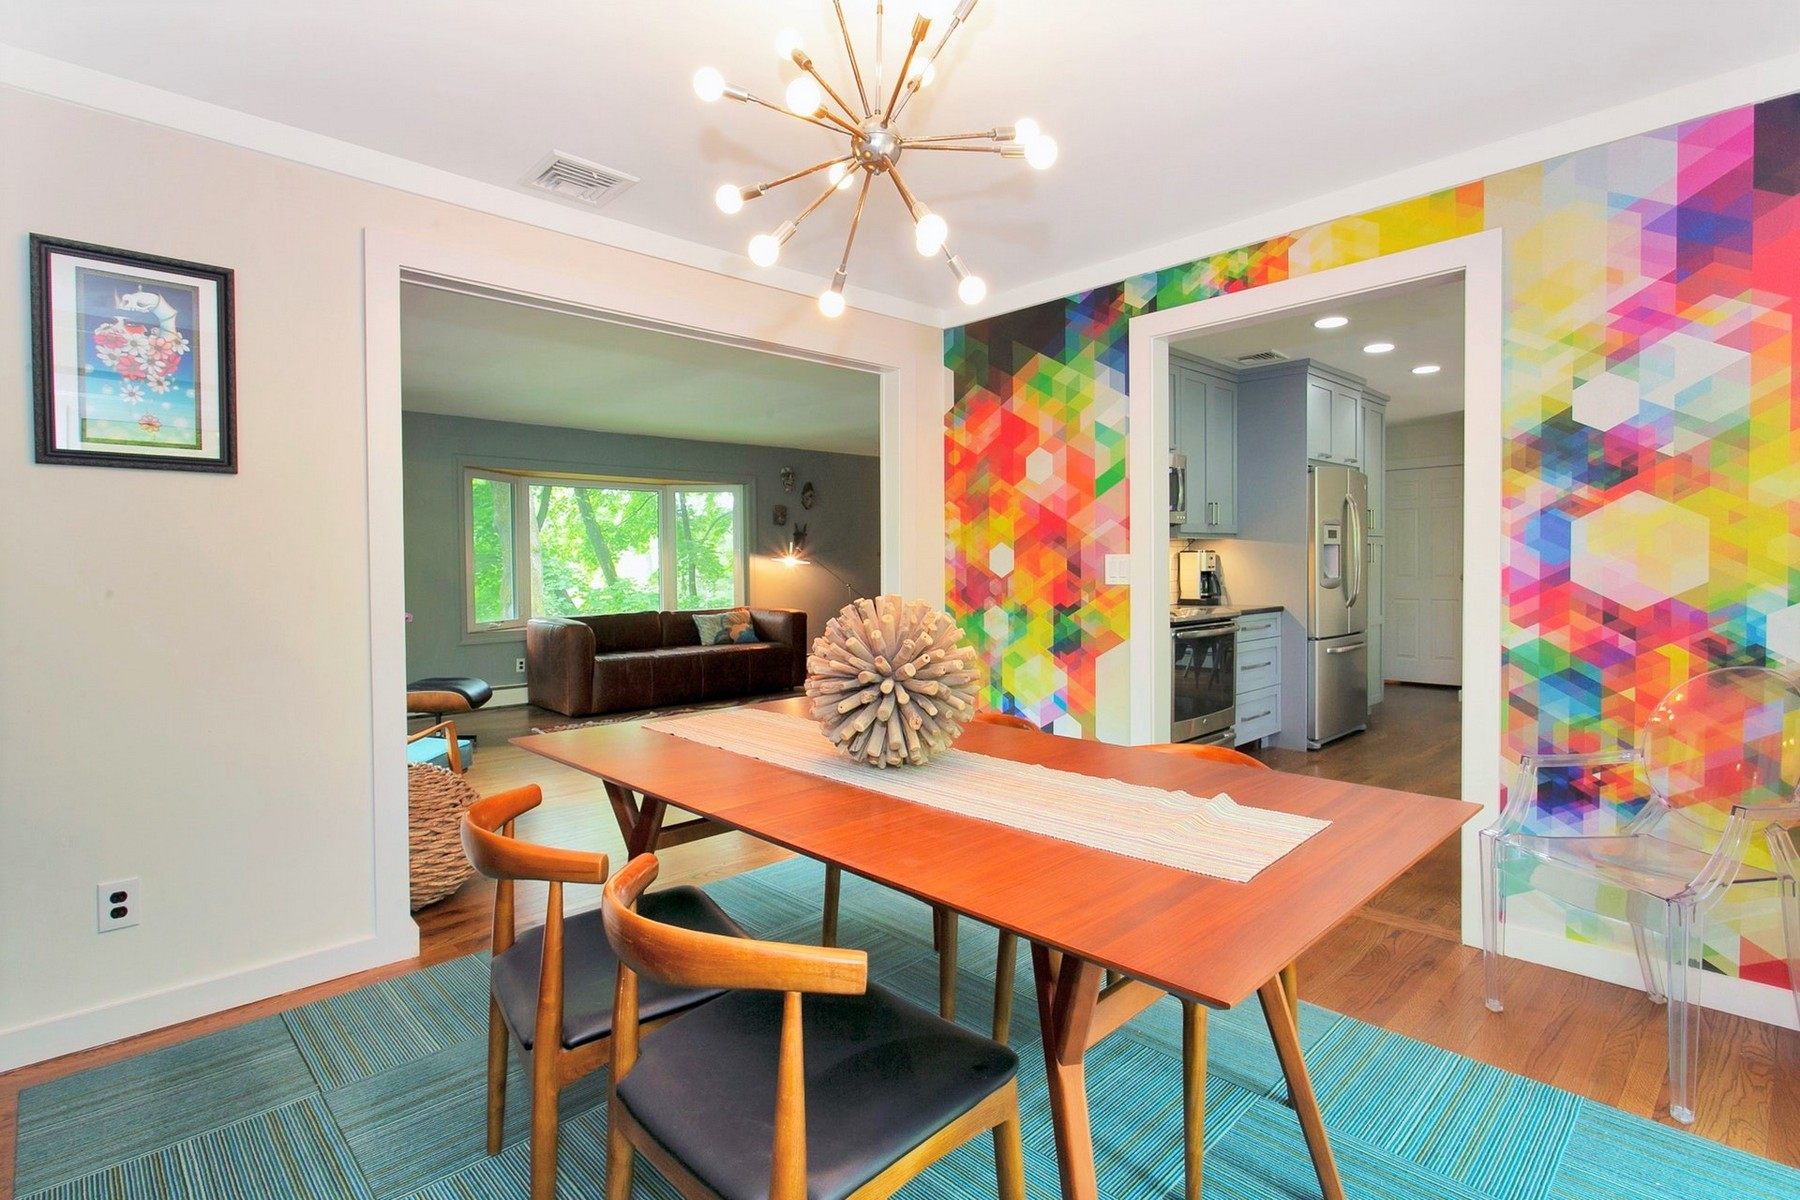 Single Family Homes for Sale at Contemporary-Modern Retreat 123 Old Post Road N Croton On Hudson, New York 10520 United States